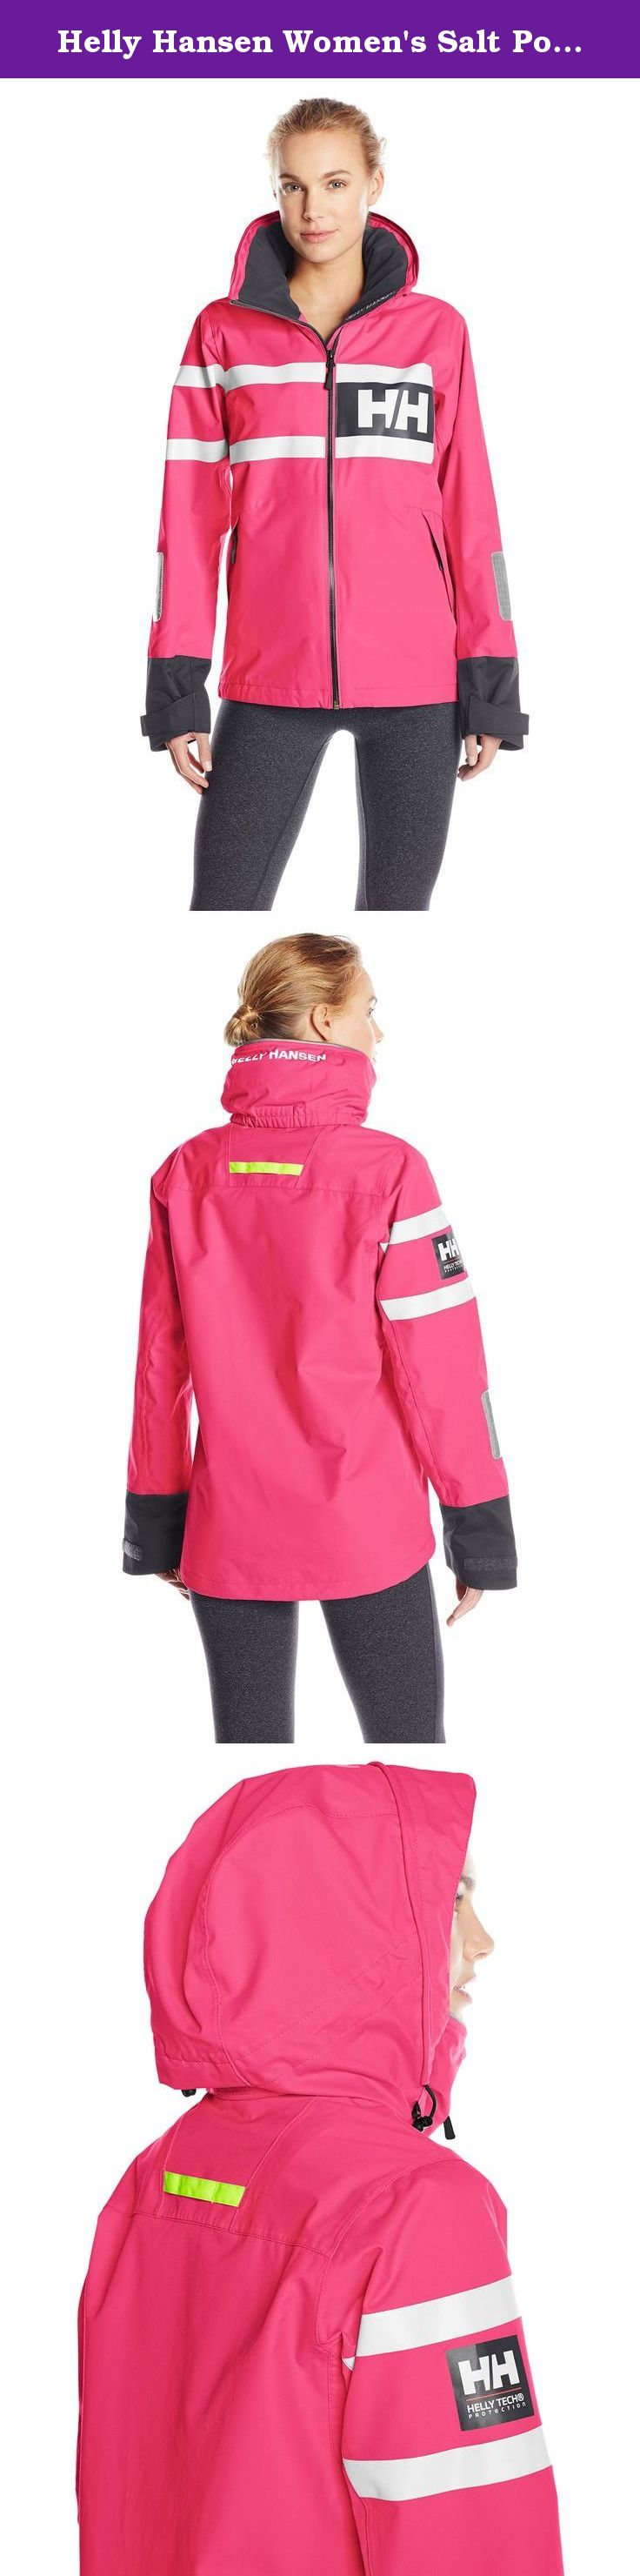 1c3c7f3f2e7 Helly hansen womens salt power jacket magenta small celebrating years jpg  736x2961 Helly hansen coats for